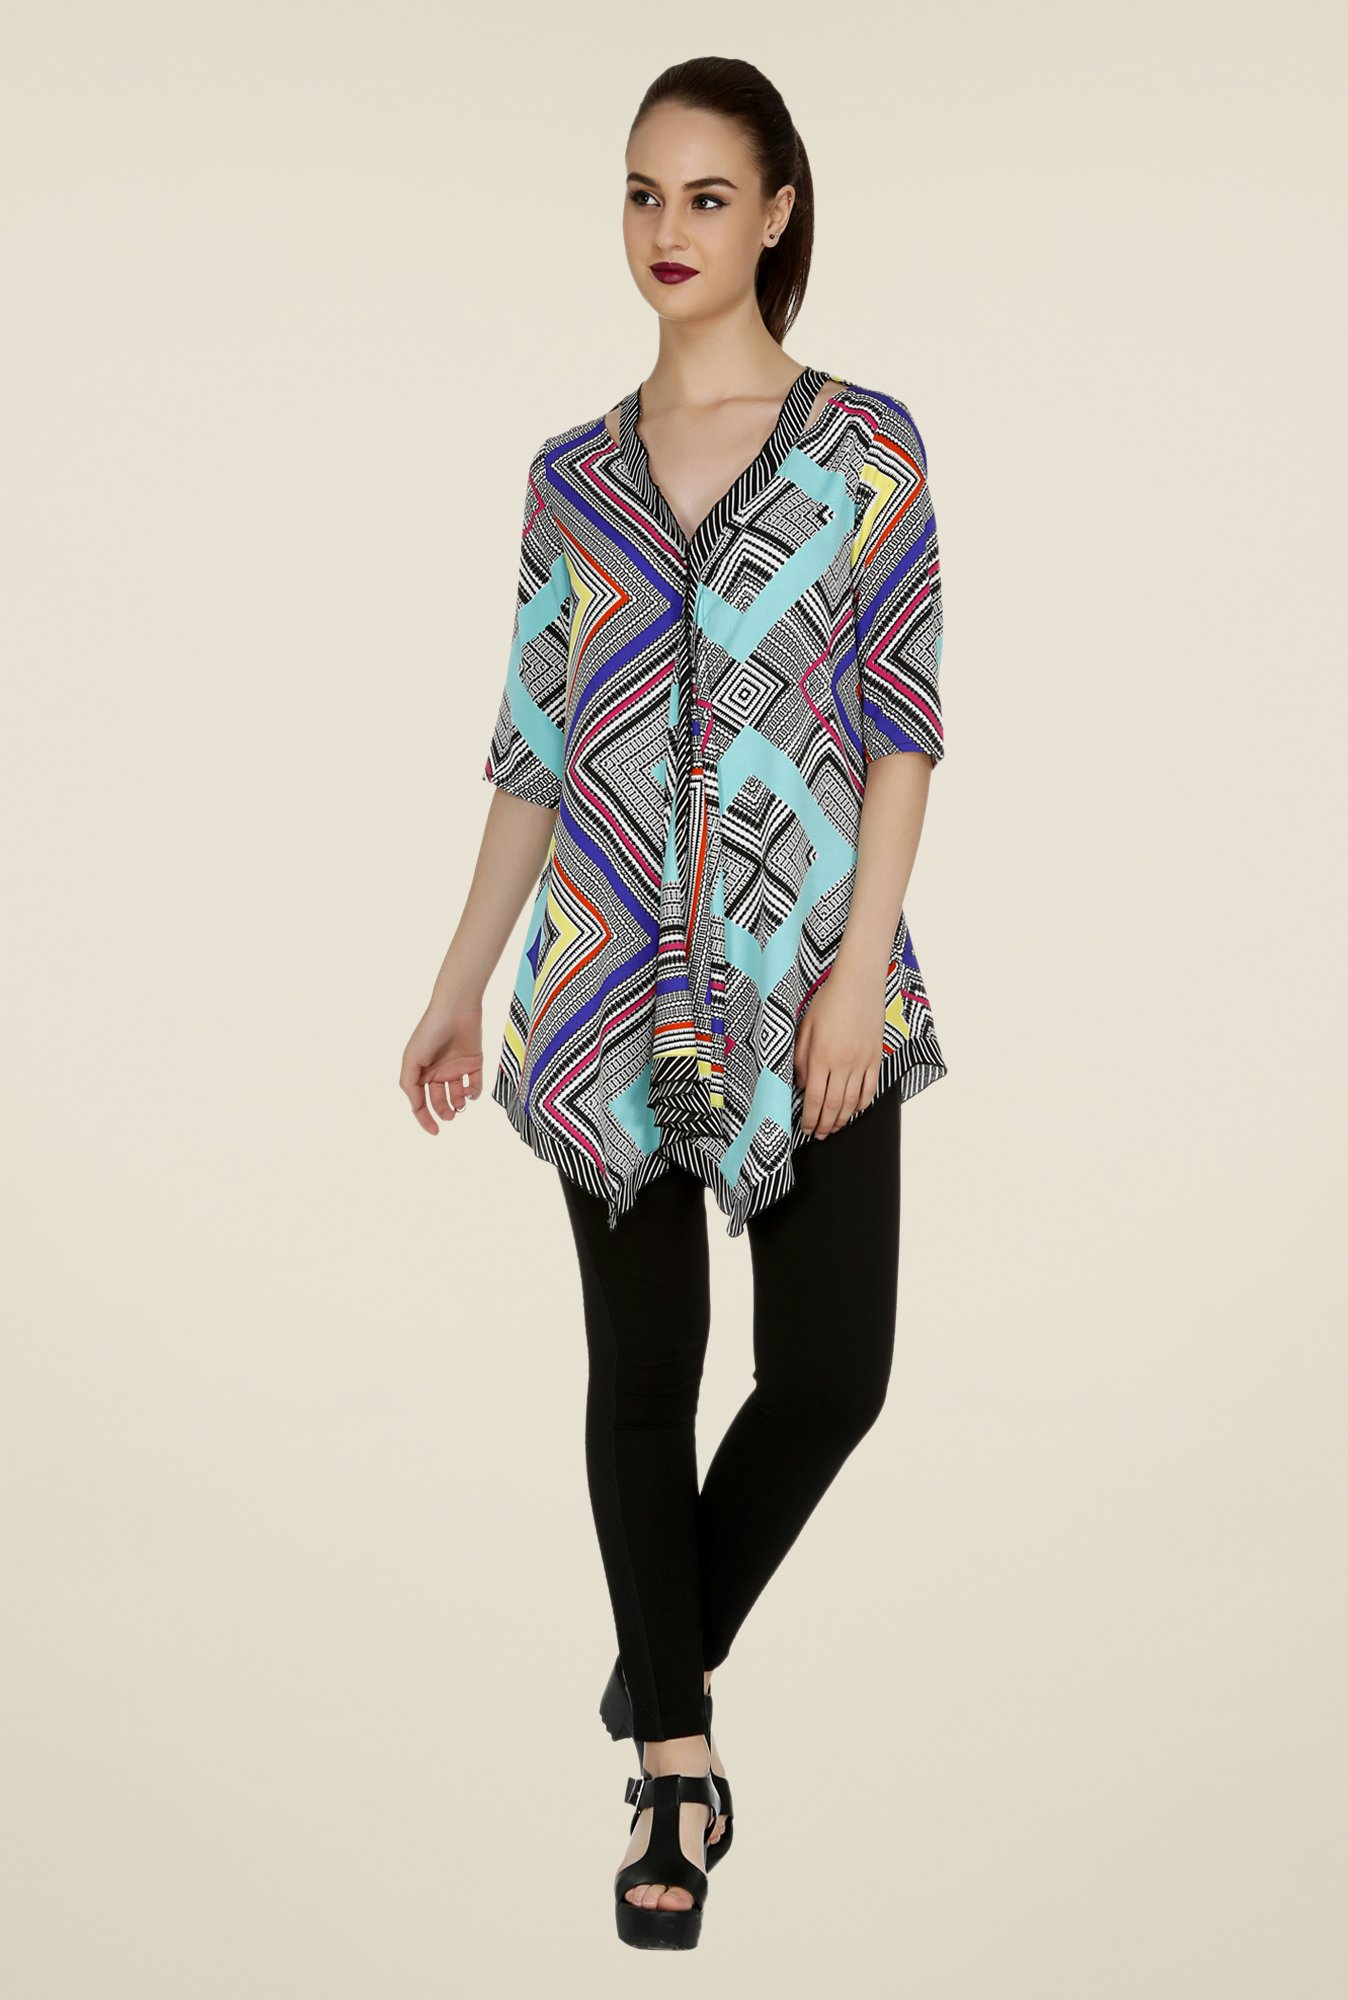 109 F Blue Printed Tunic